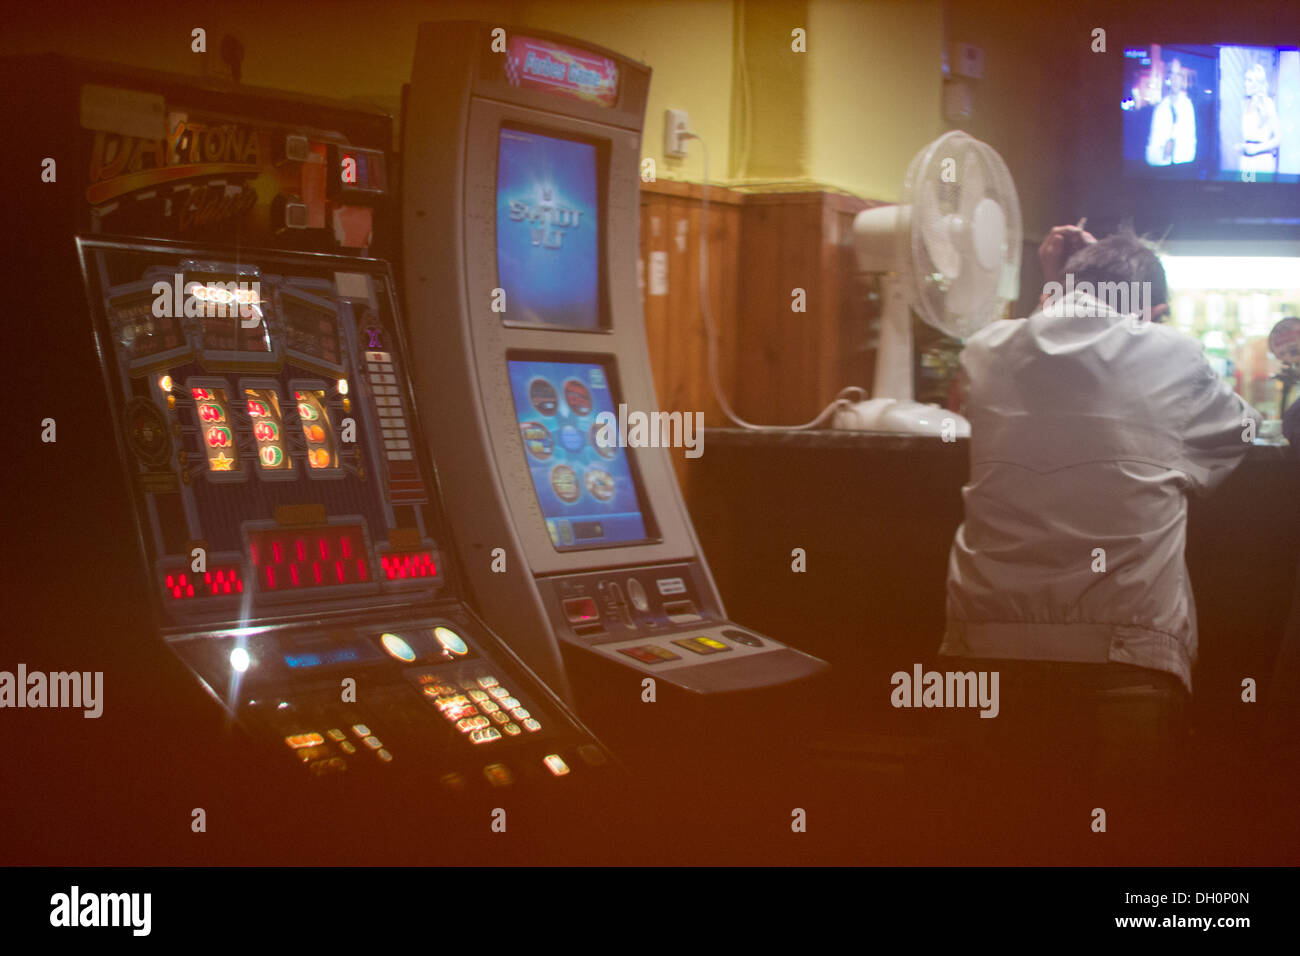 A gambler in Casino, Czech republic, country with the highest density of gambling machines - Stock Image